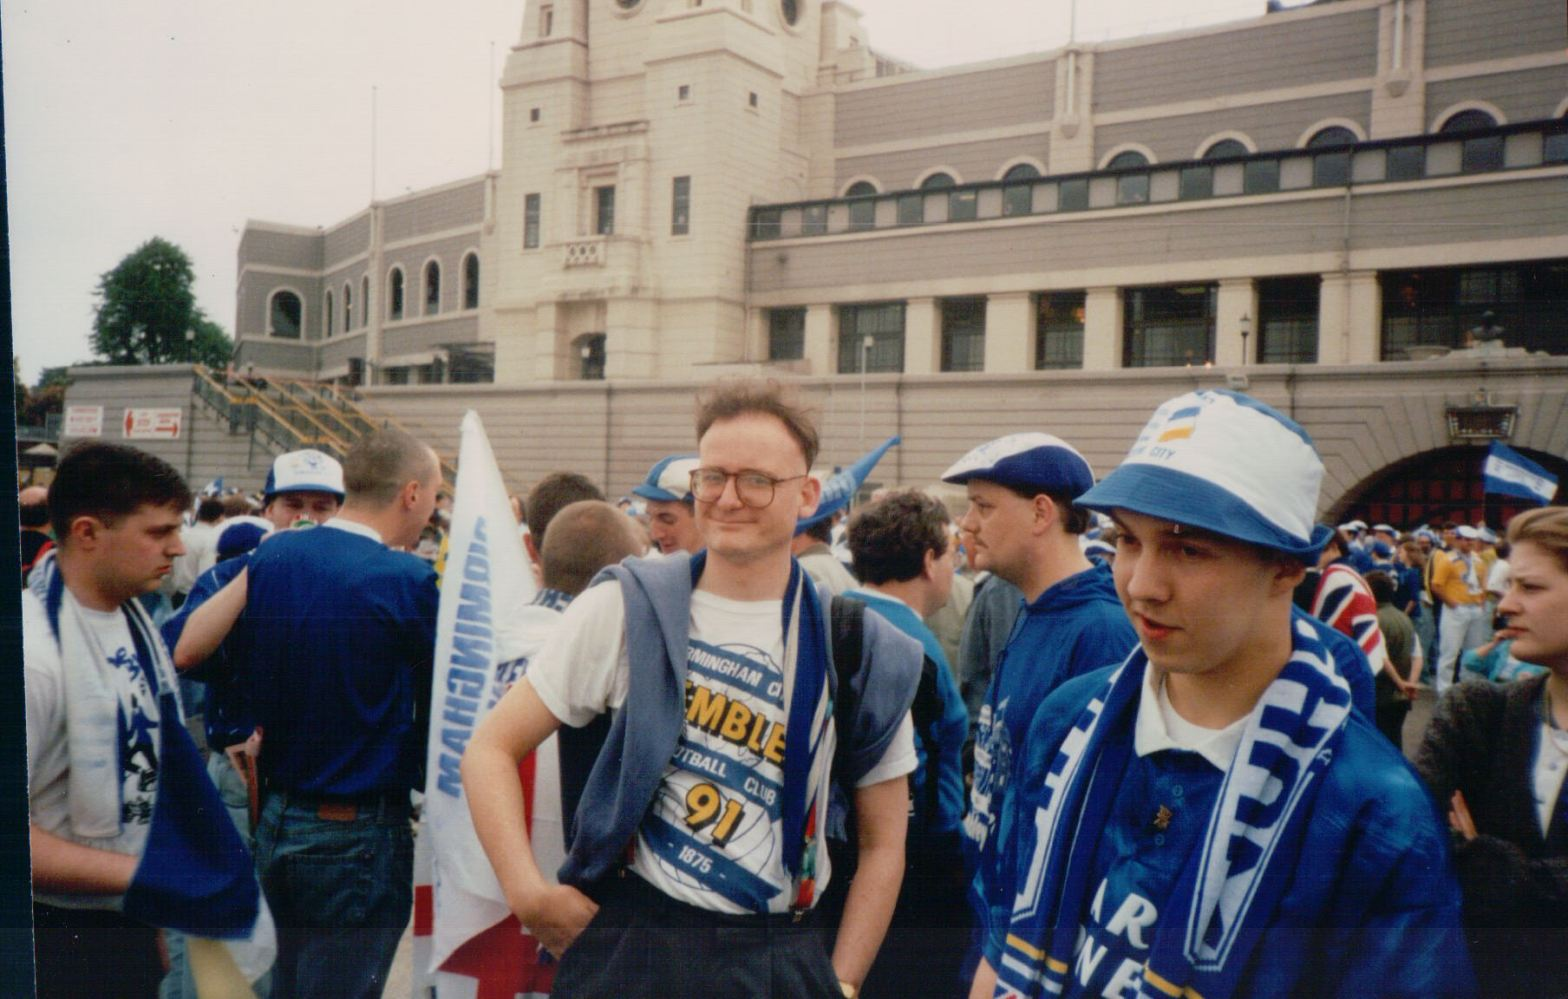 Adrian Robson at Wembley in 1991